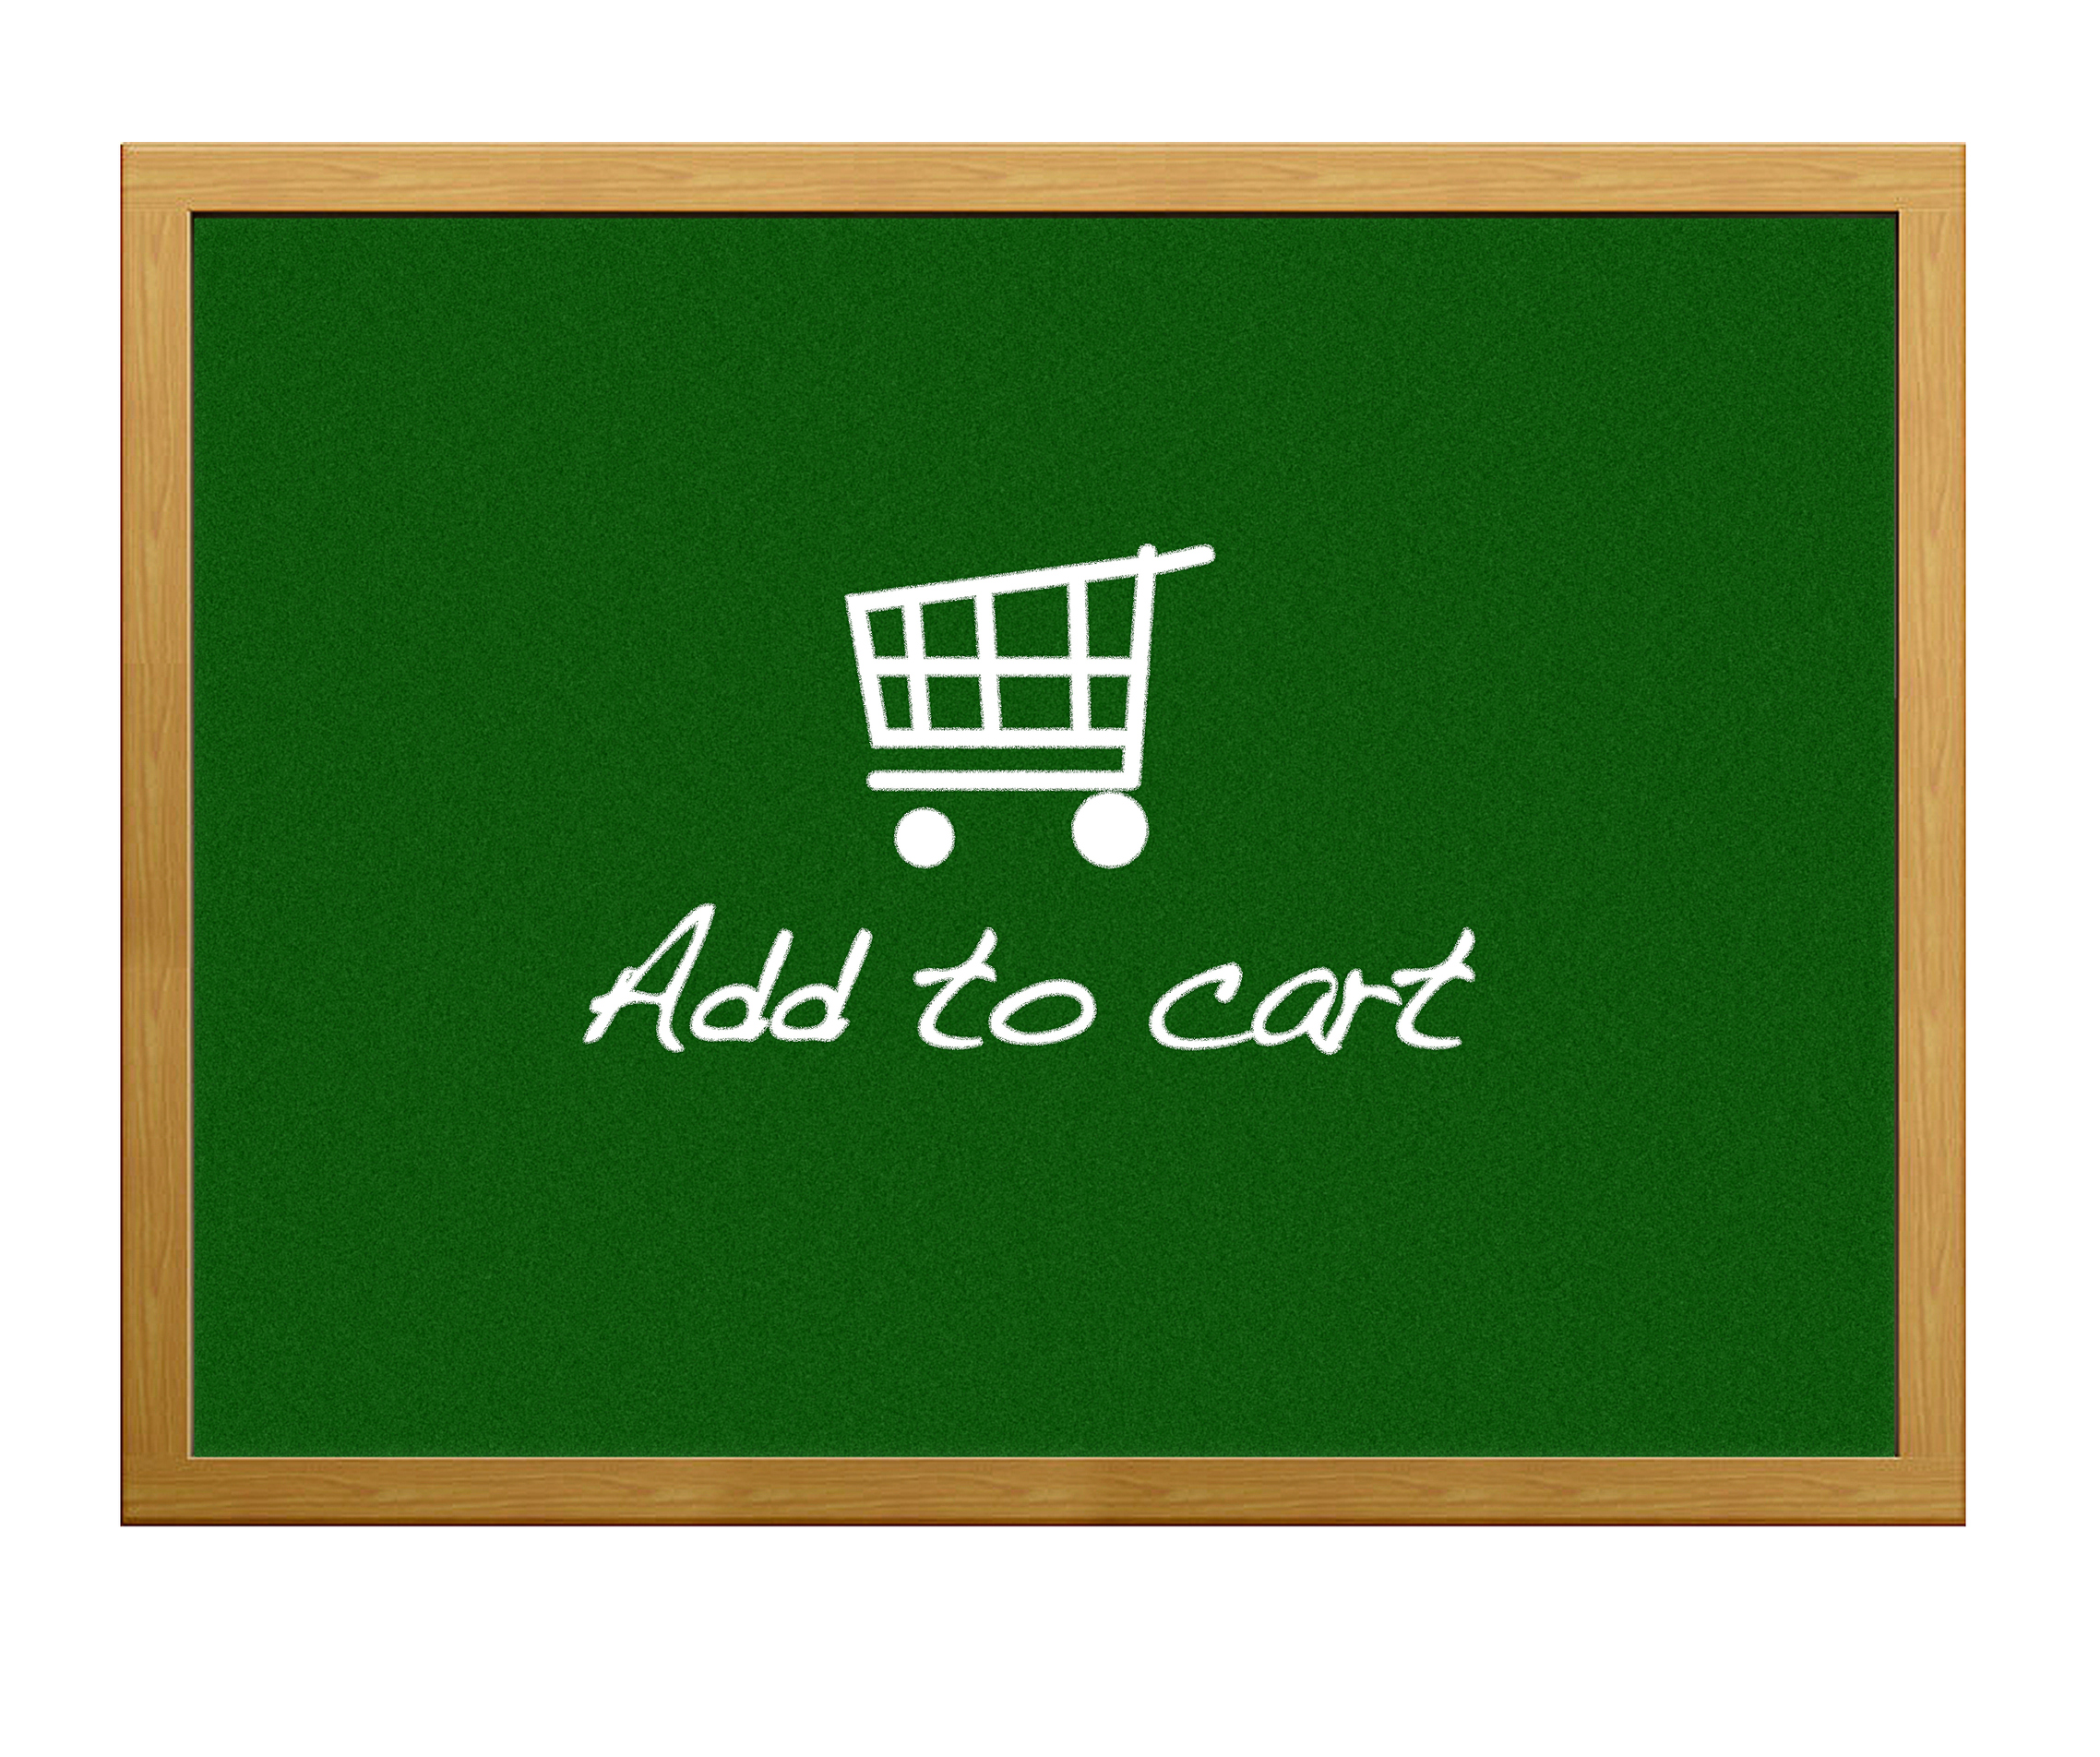 add-to-cart-with-green-background